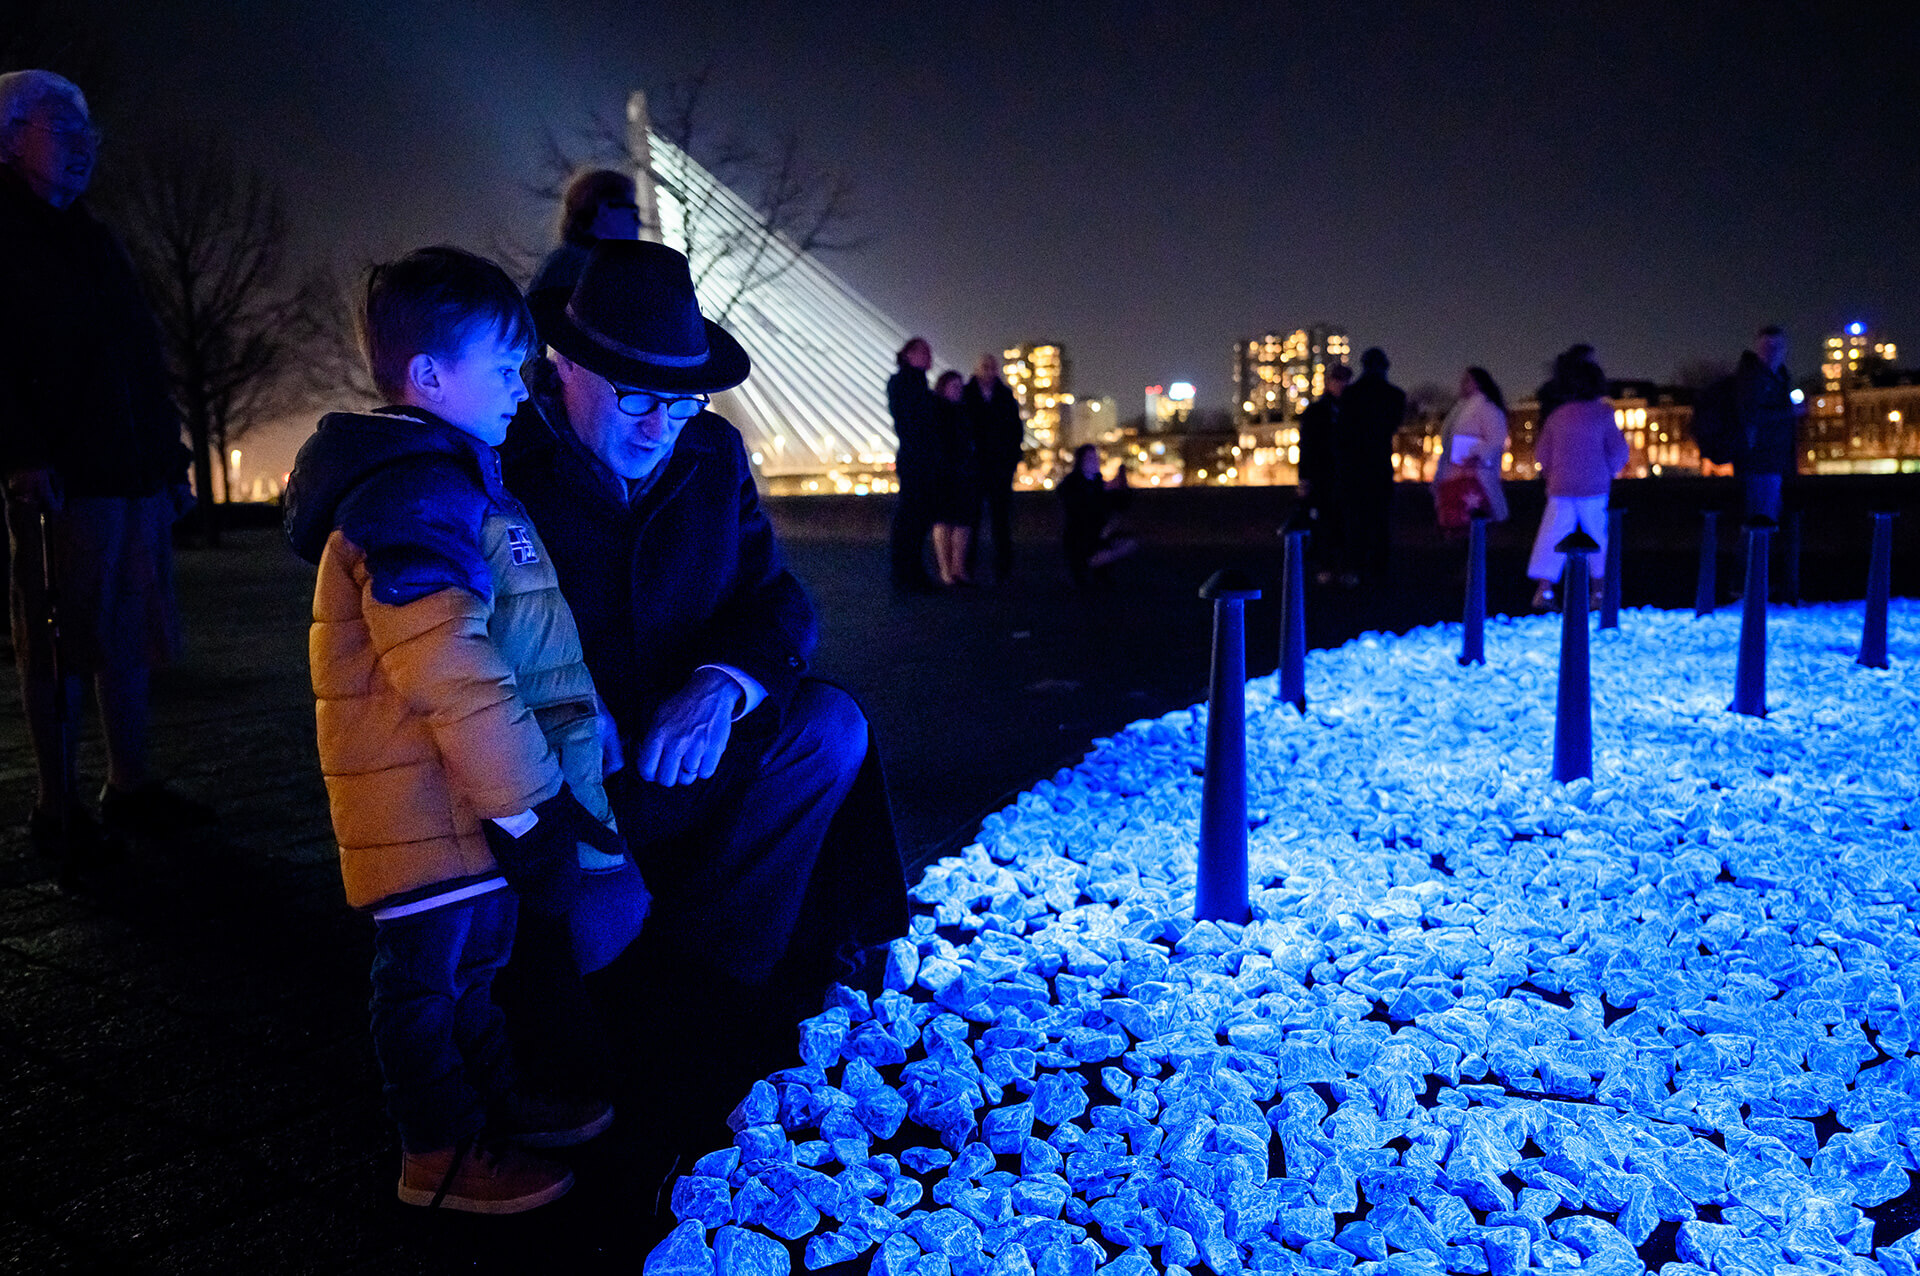 The light-emitting rocks are symbolic of the Jewish custom of placing stones on graves – an elder and child at Levenslicht | Levenslicht | Daan Roosegaarde | Studio Roosegaarde| STIRworld